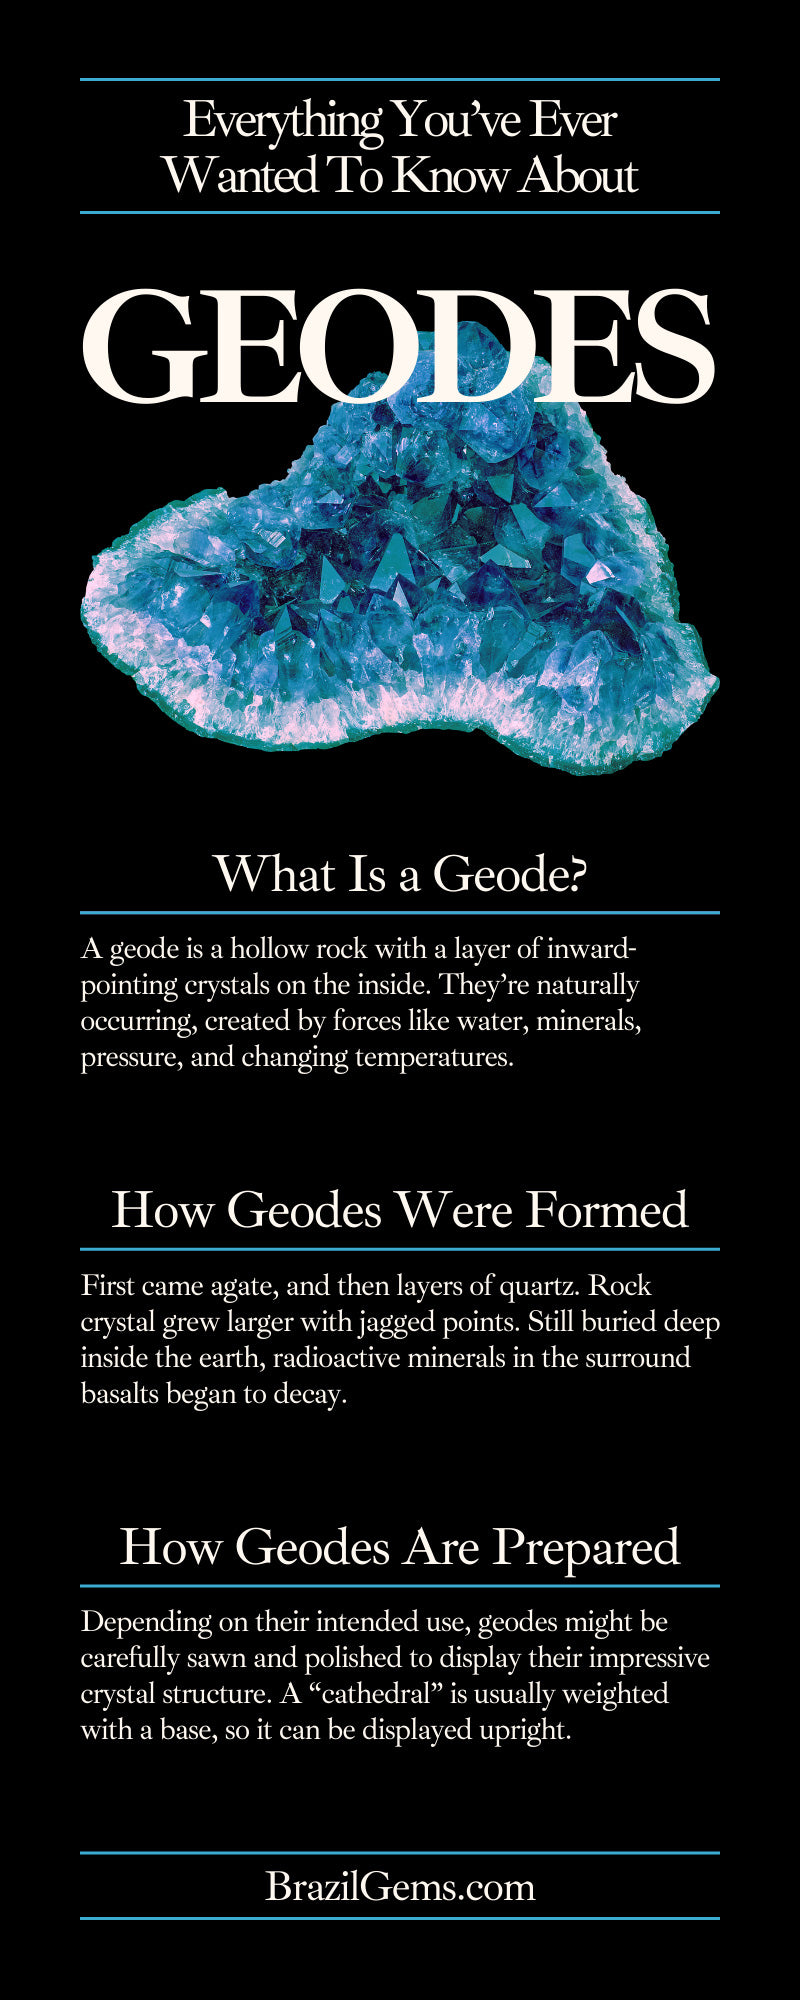 Everything You've Ever Wanted To Know About Geodes